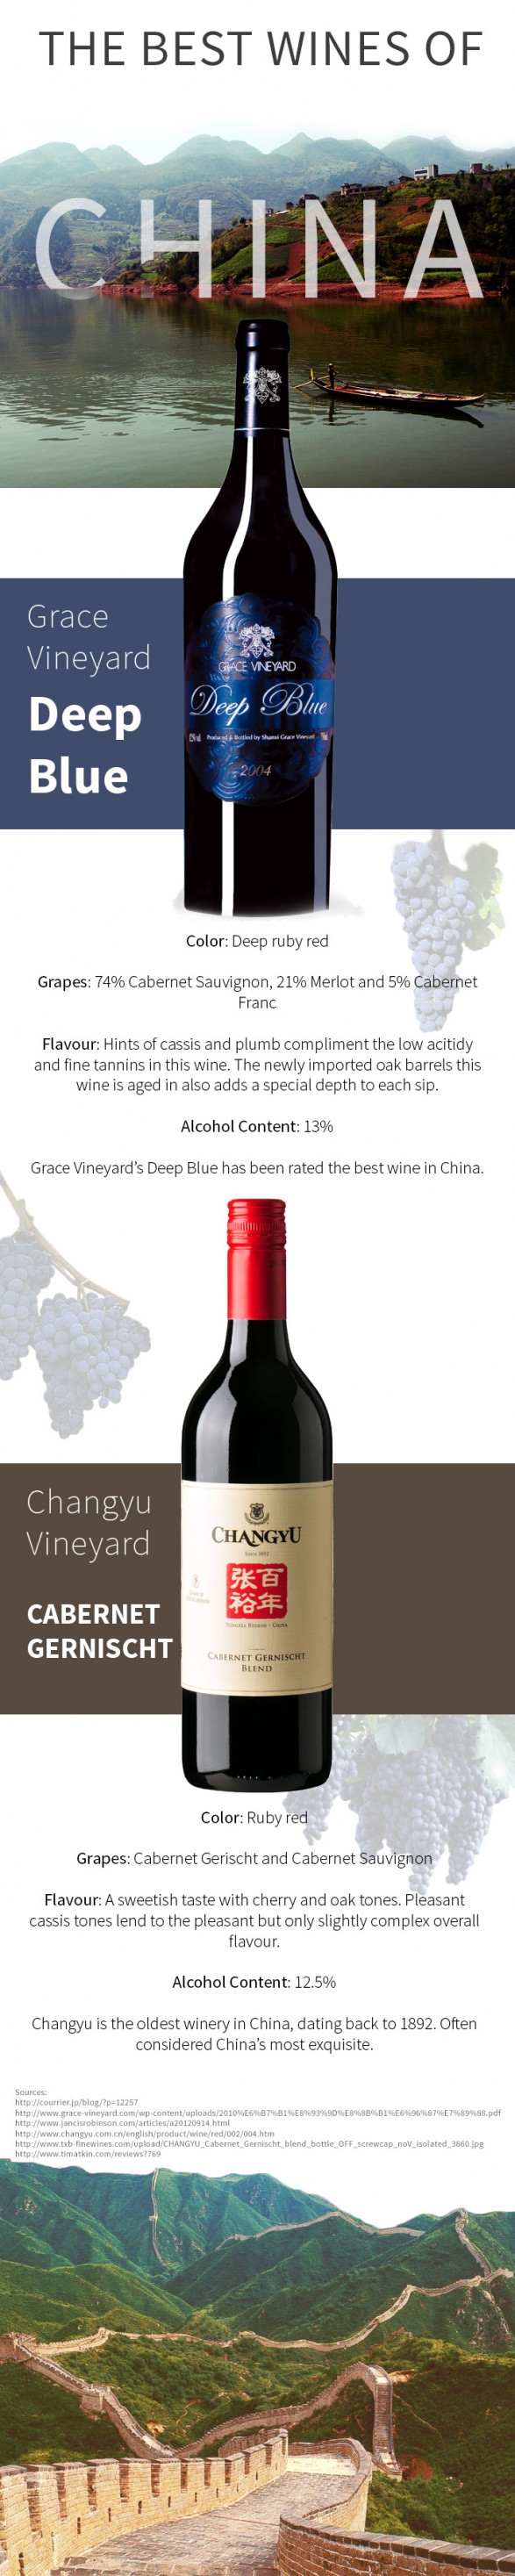 Top Two Wines of China